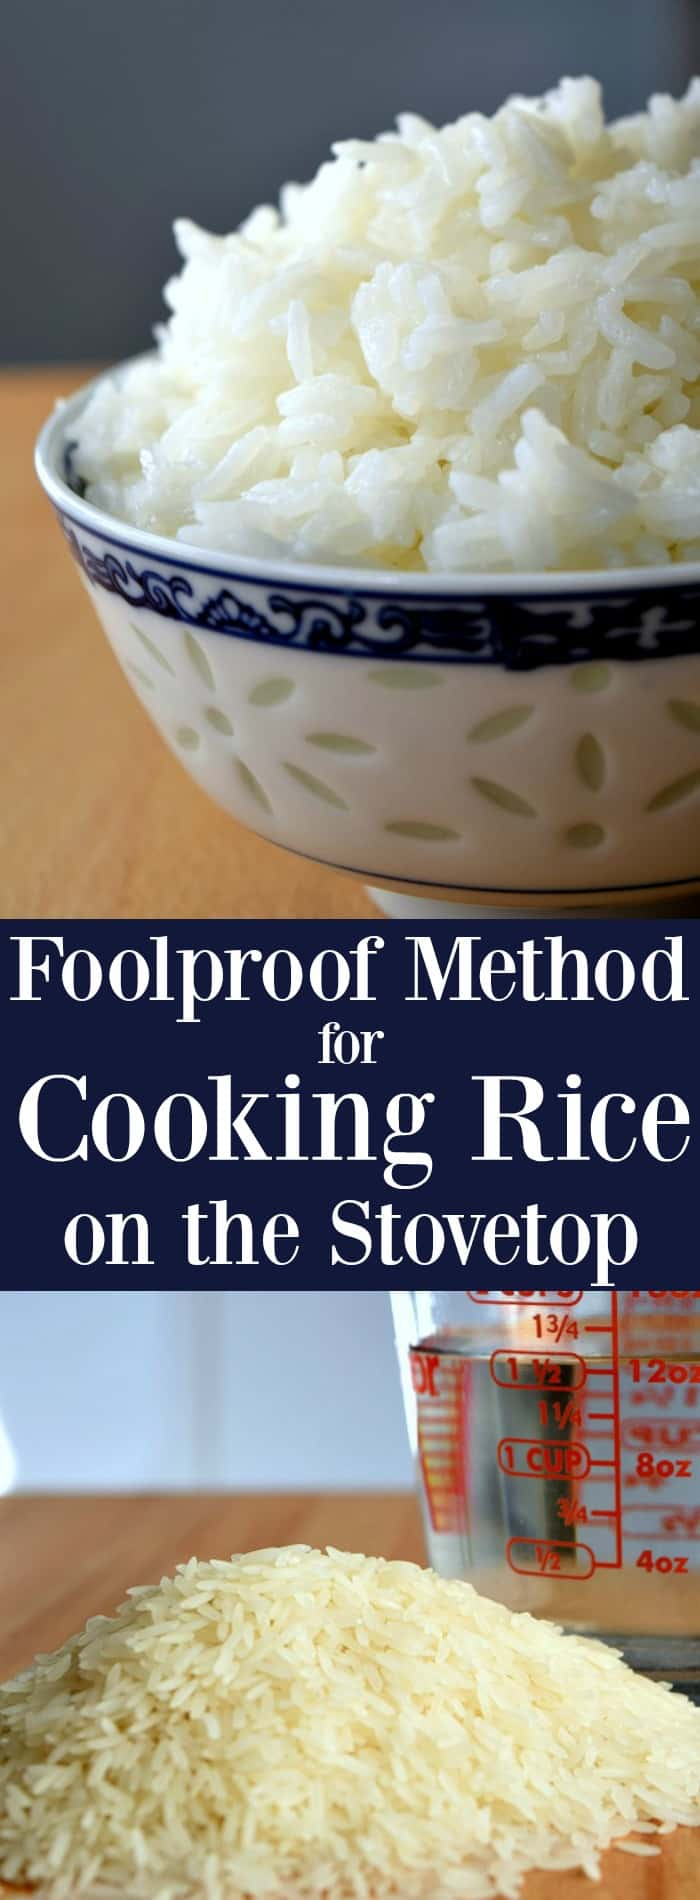 Foolproof Method for Cooking Rice on the Stovetop